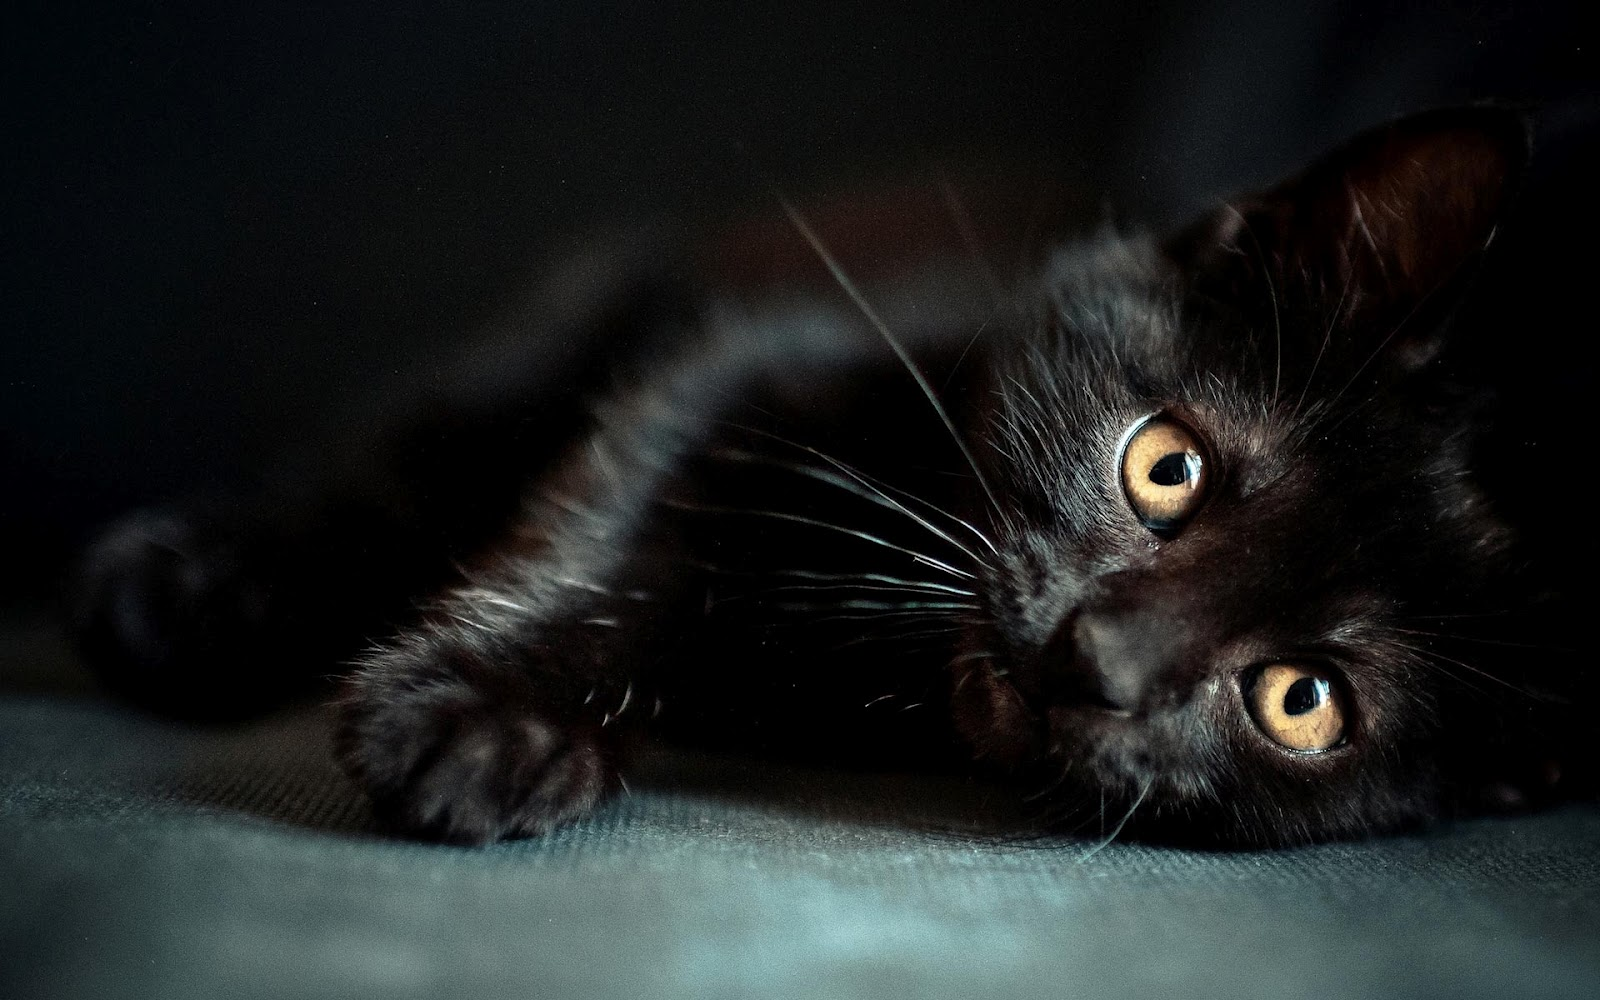 45 Black Kitten Wallpaper On Wallpapersafari